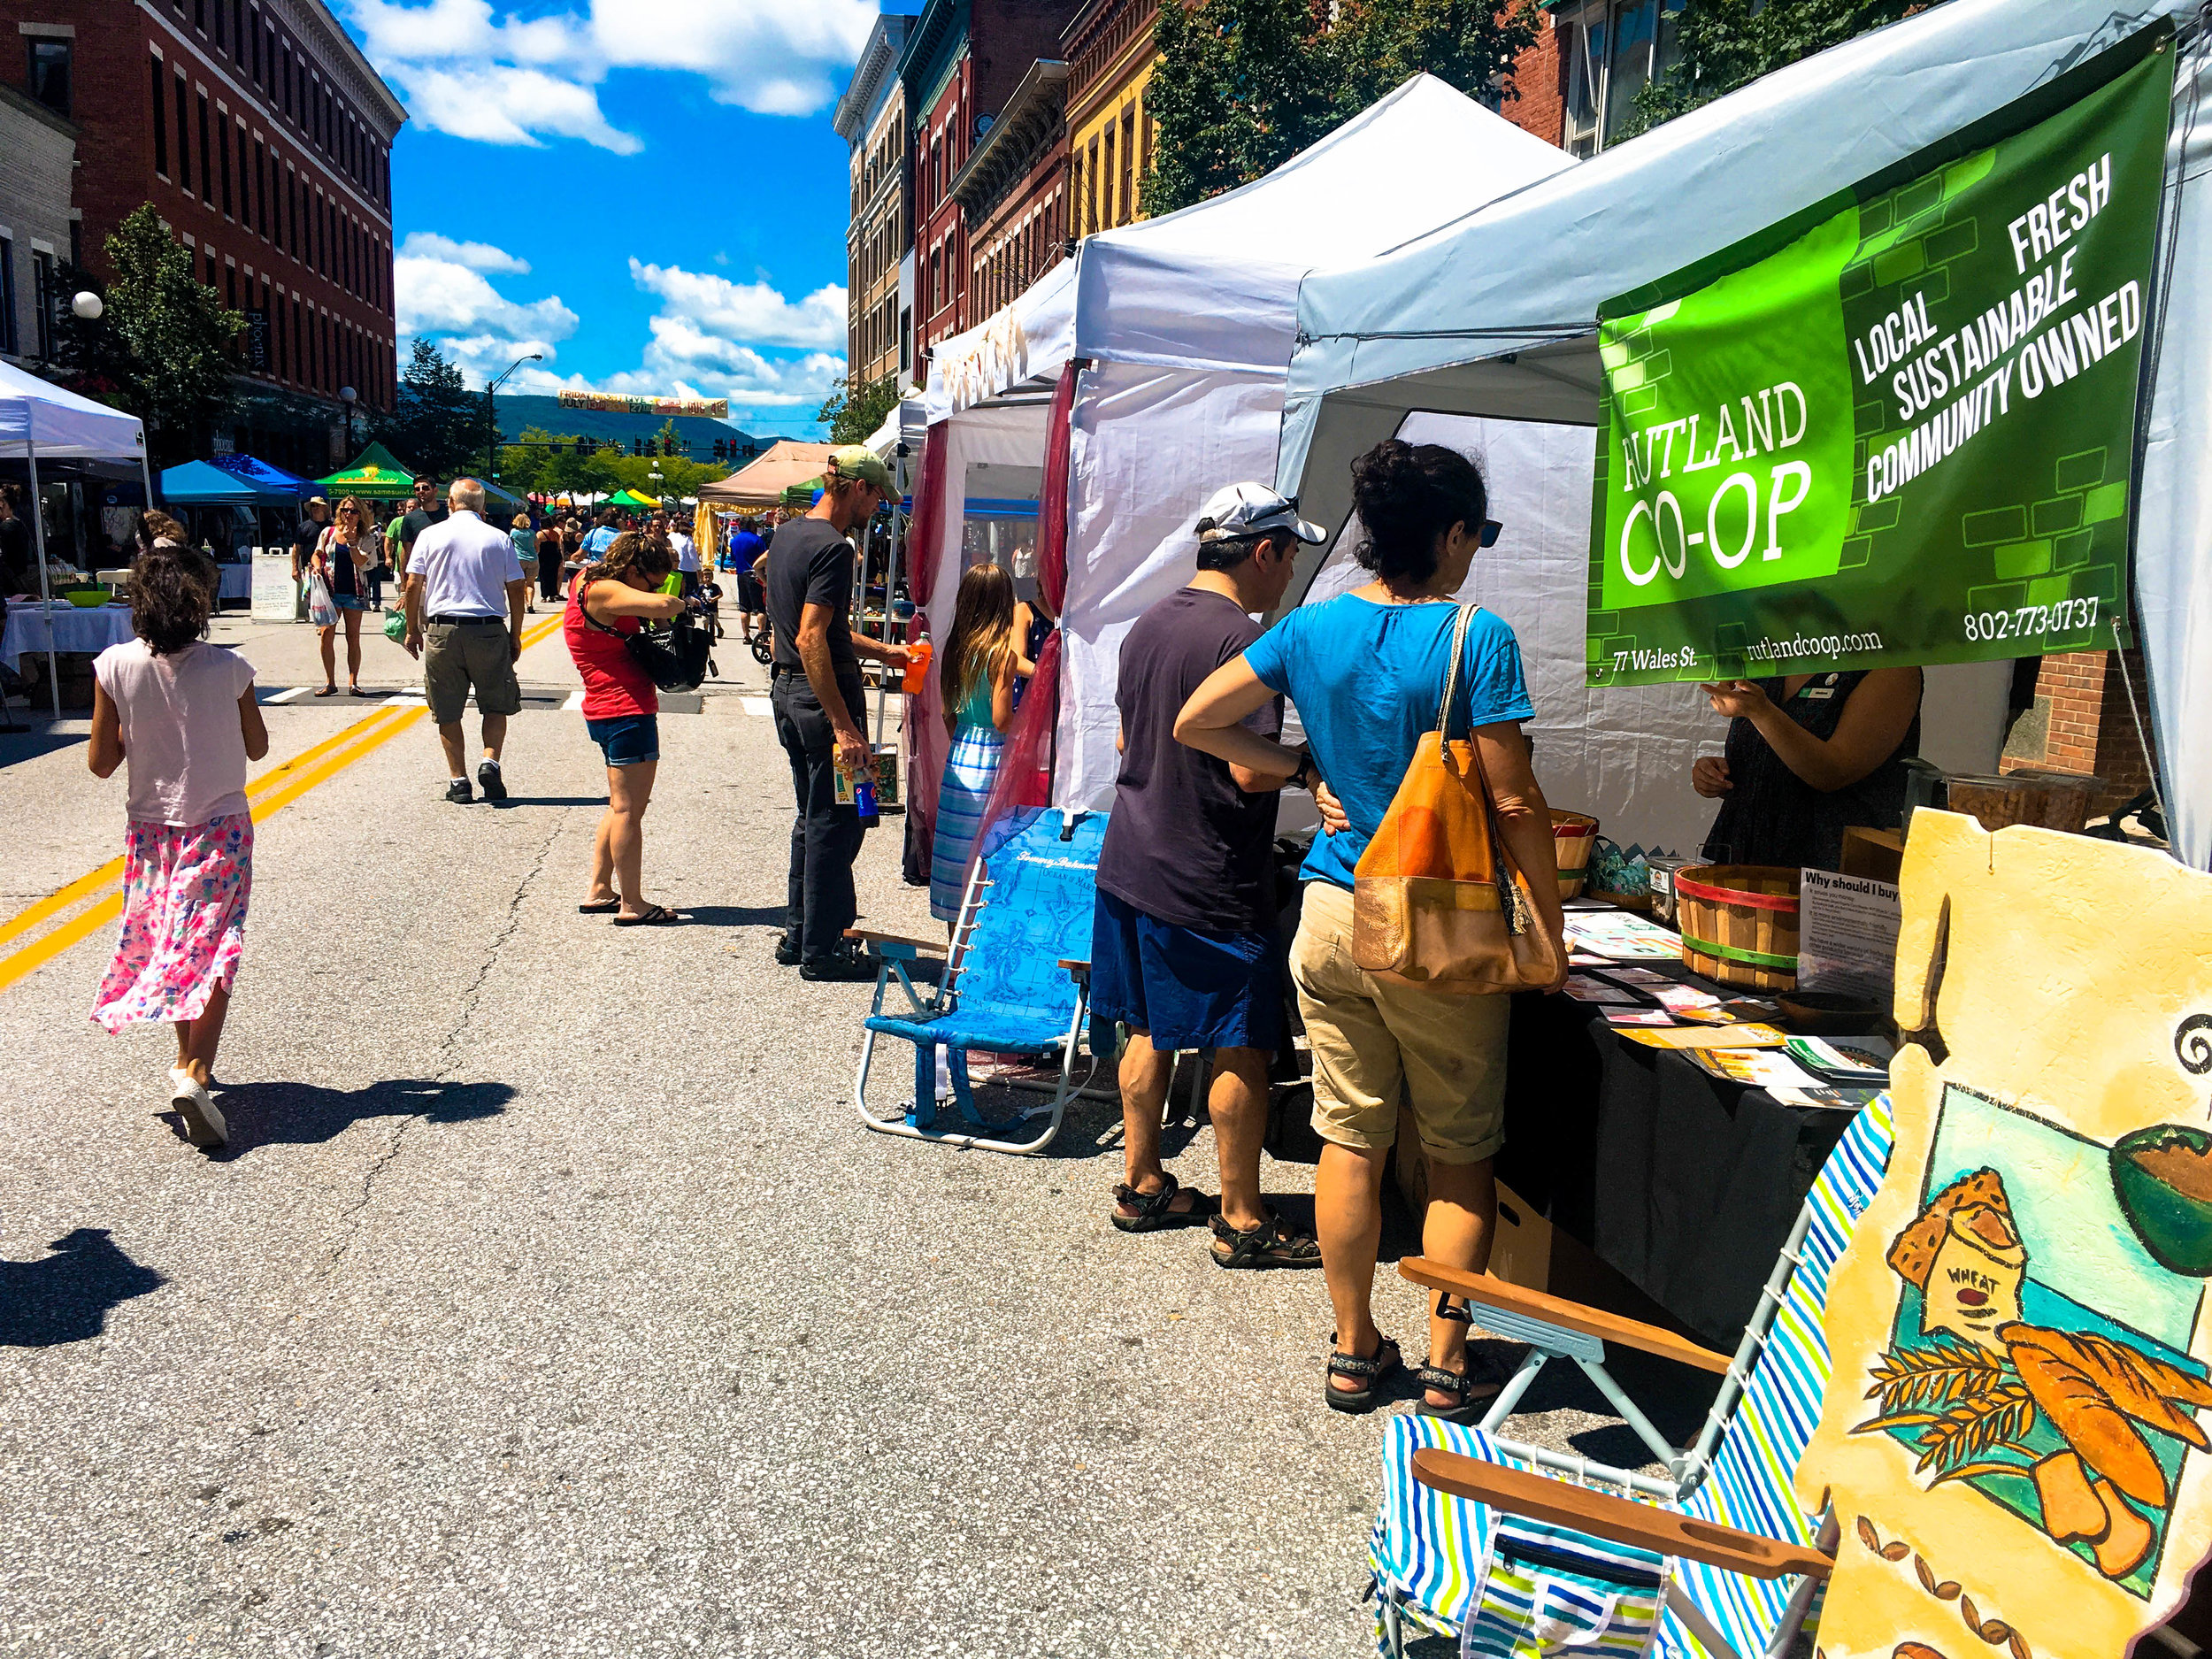 Attendees browse vendor tents at the Downtown Rutland Street Party & Sidewalk Sales.